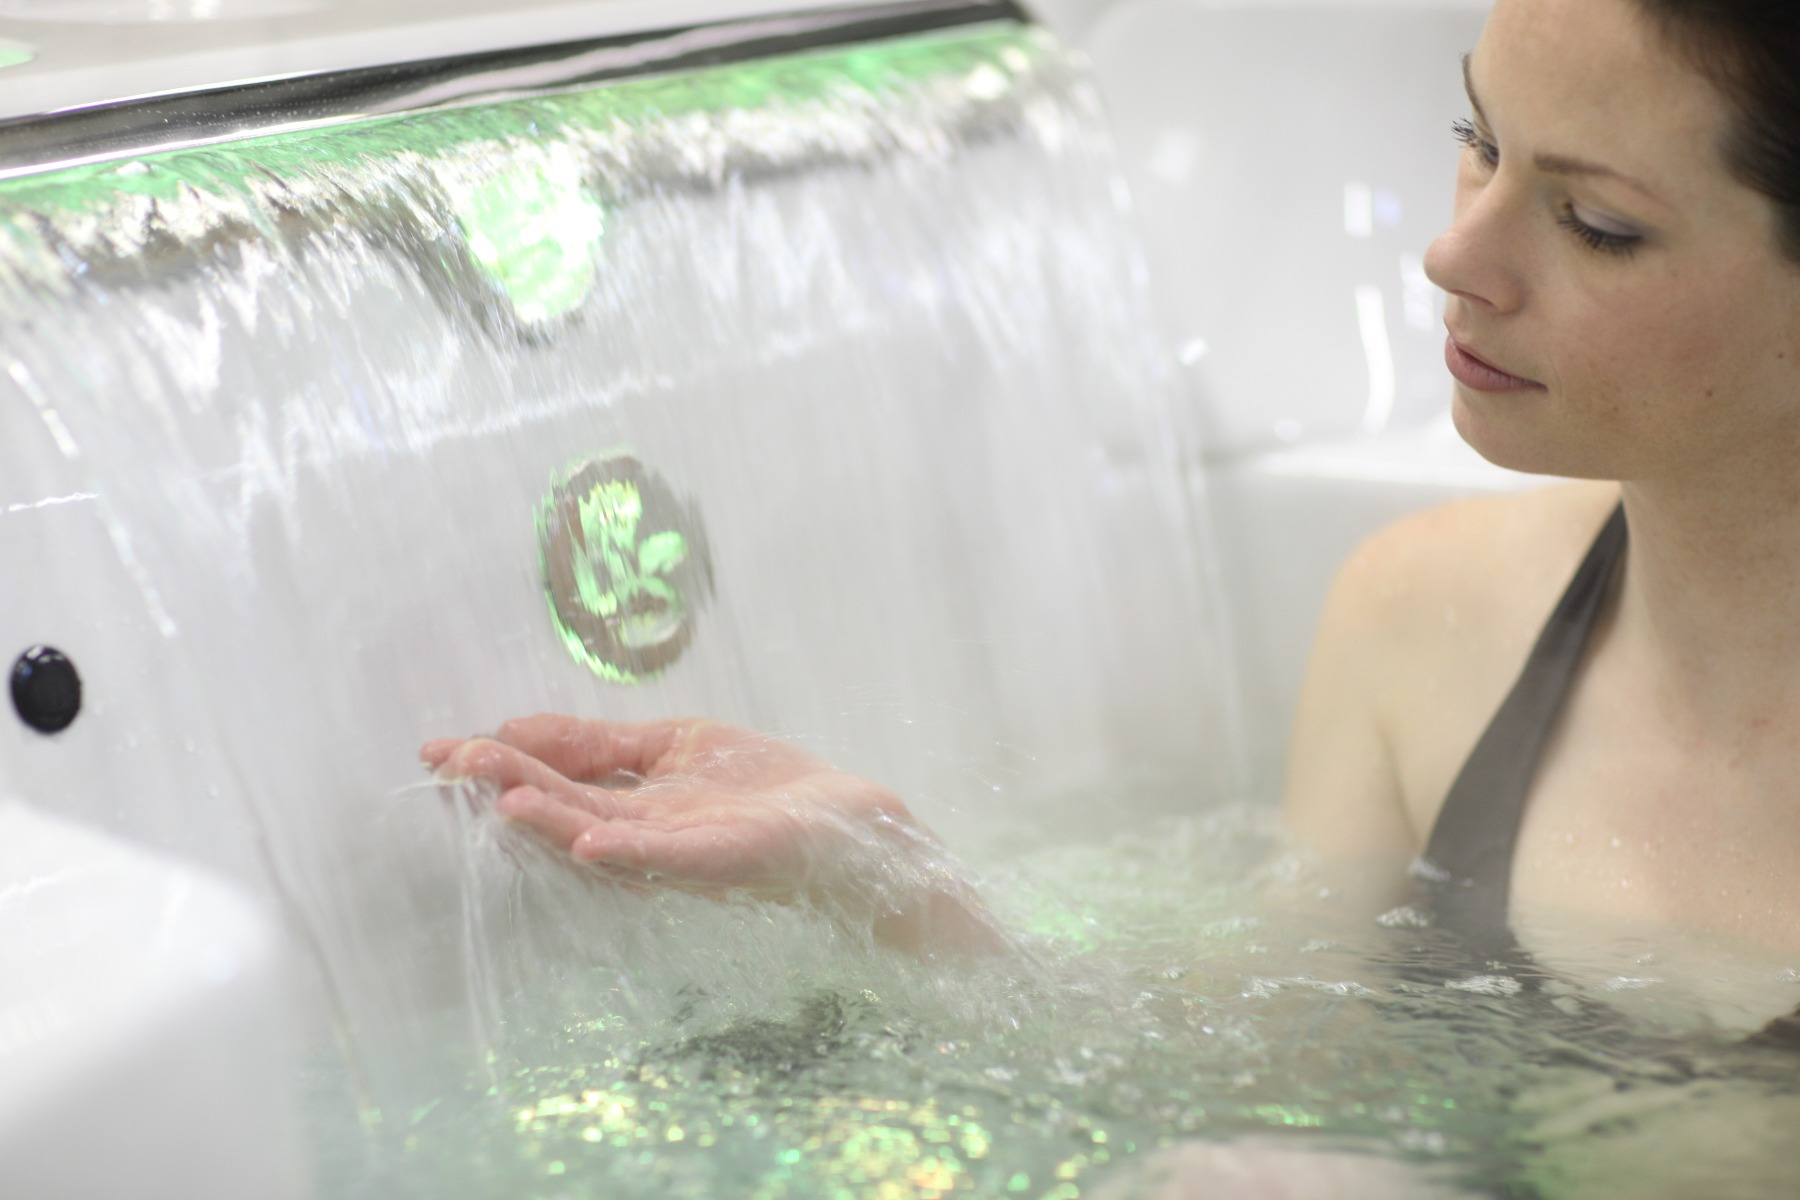 With your own private Hot Tub, you can enjoy the therapeutic benefits whenever you want!